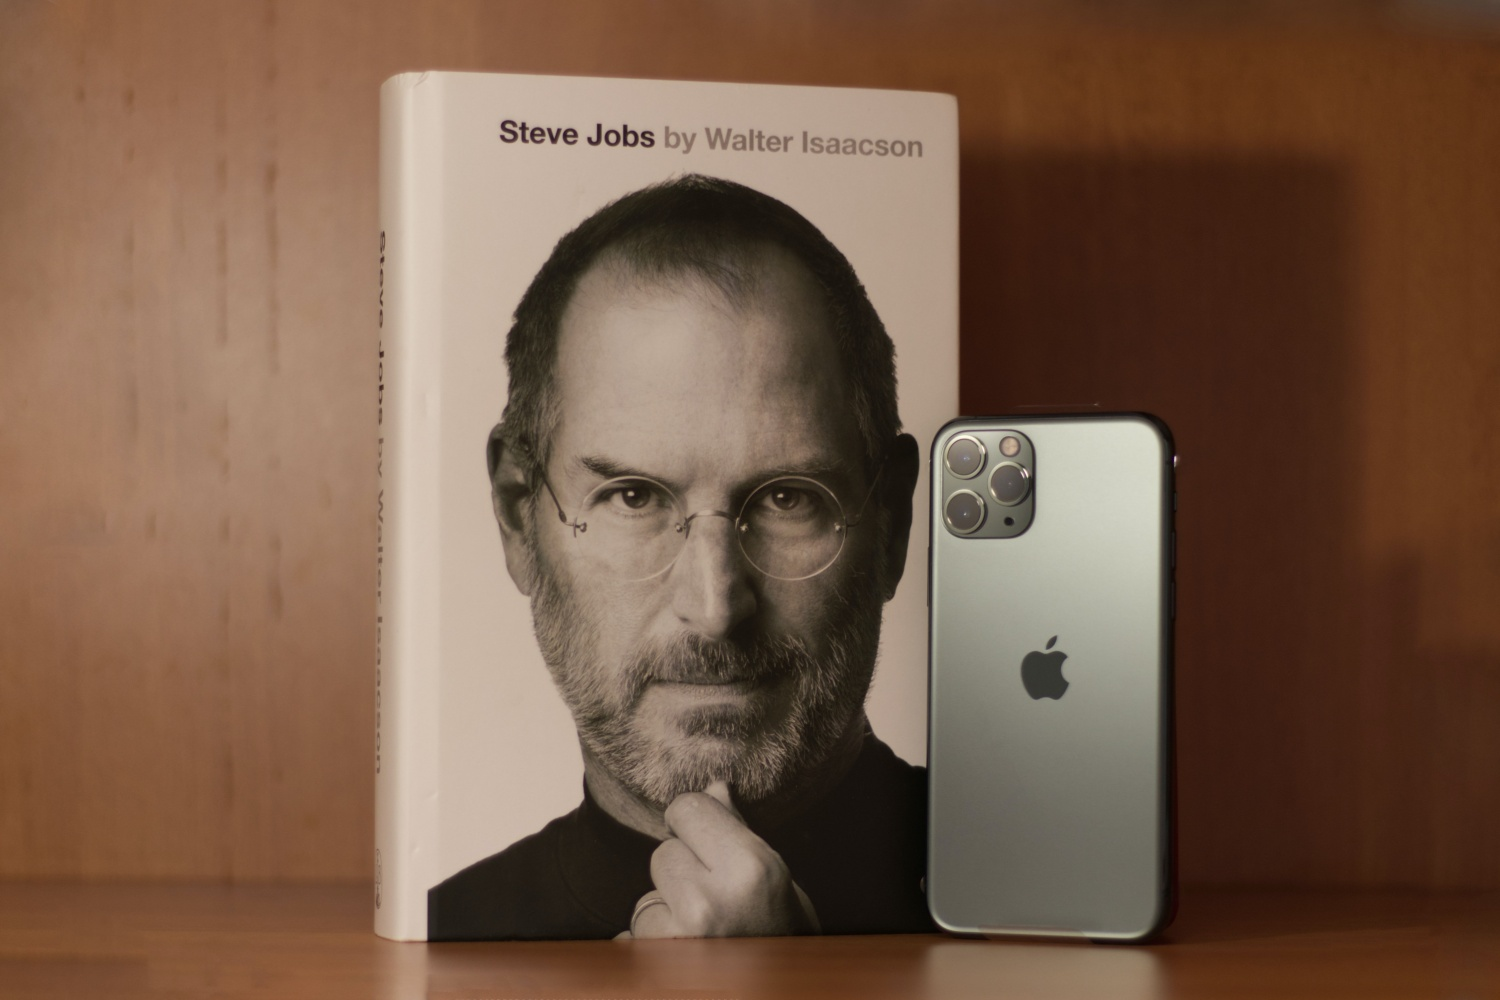 Samsung Makes Disrespectful Gesture Towards Apple's Late Steve Jobs Calling Him the 'Turtleneck Wearer' After Passing on Oct 5, 2011